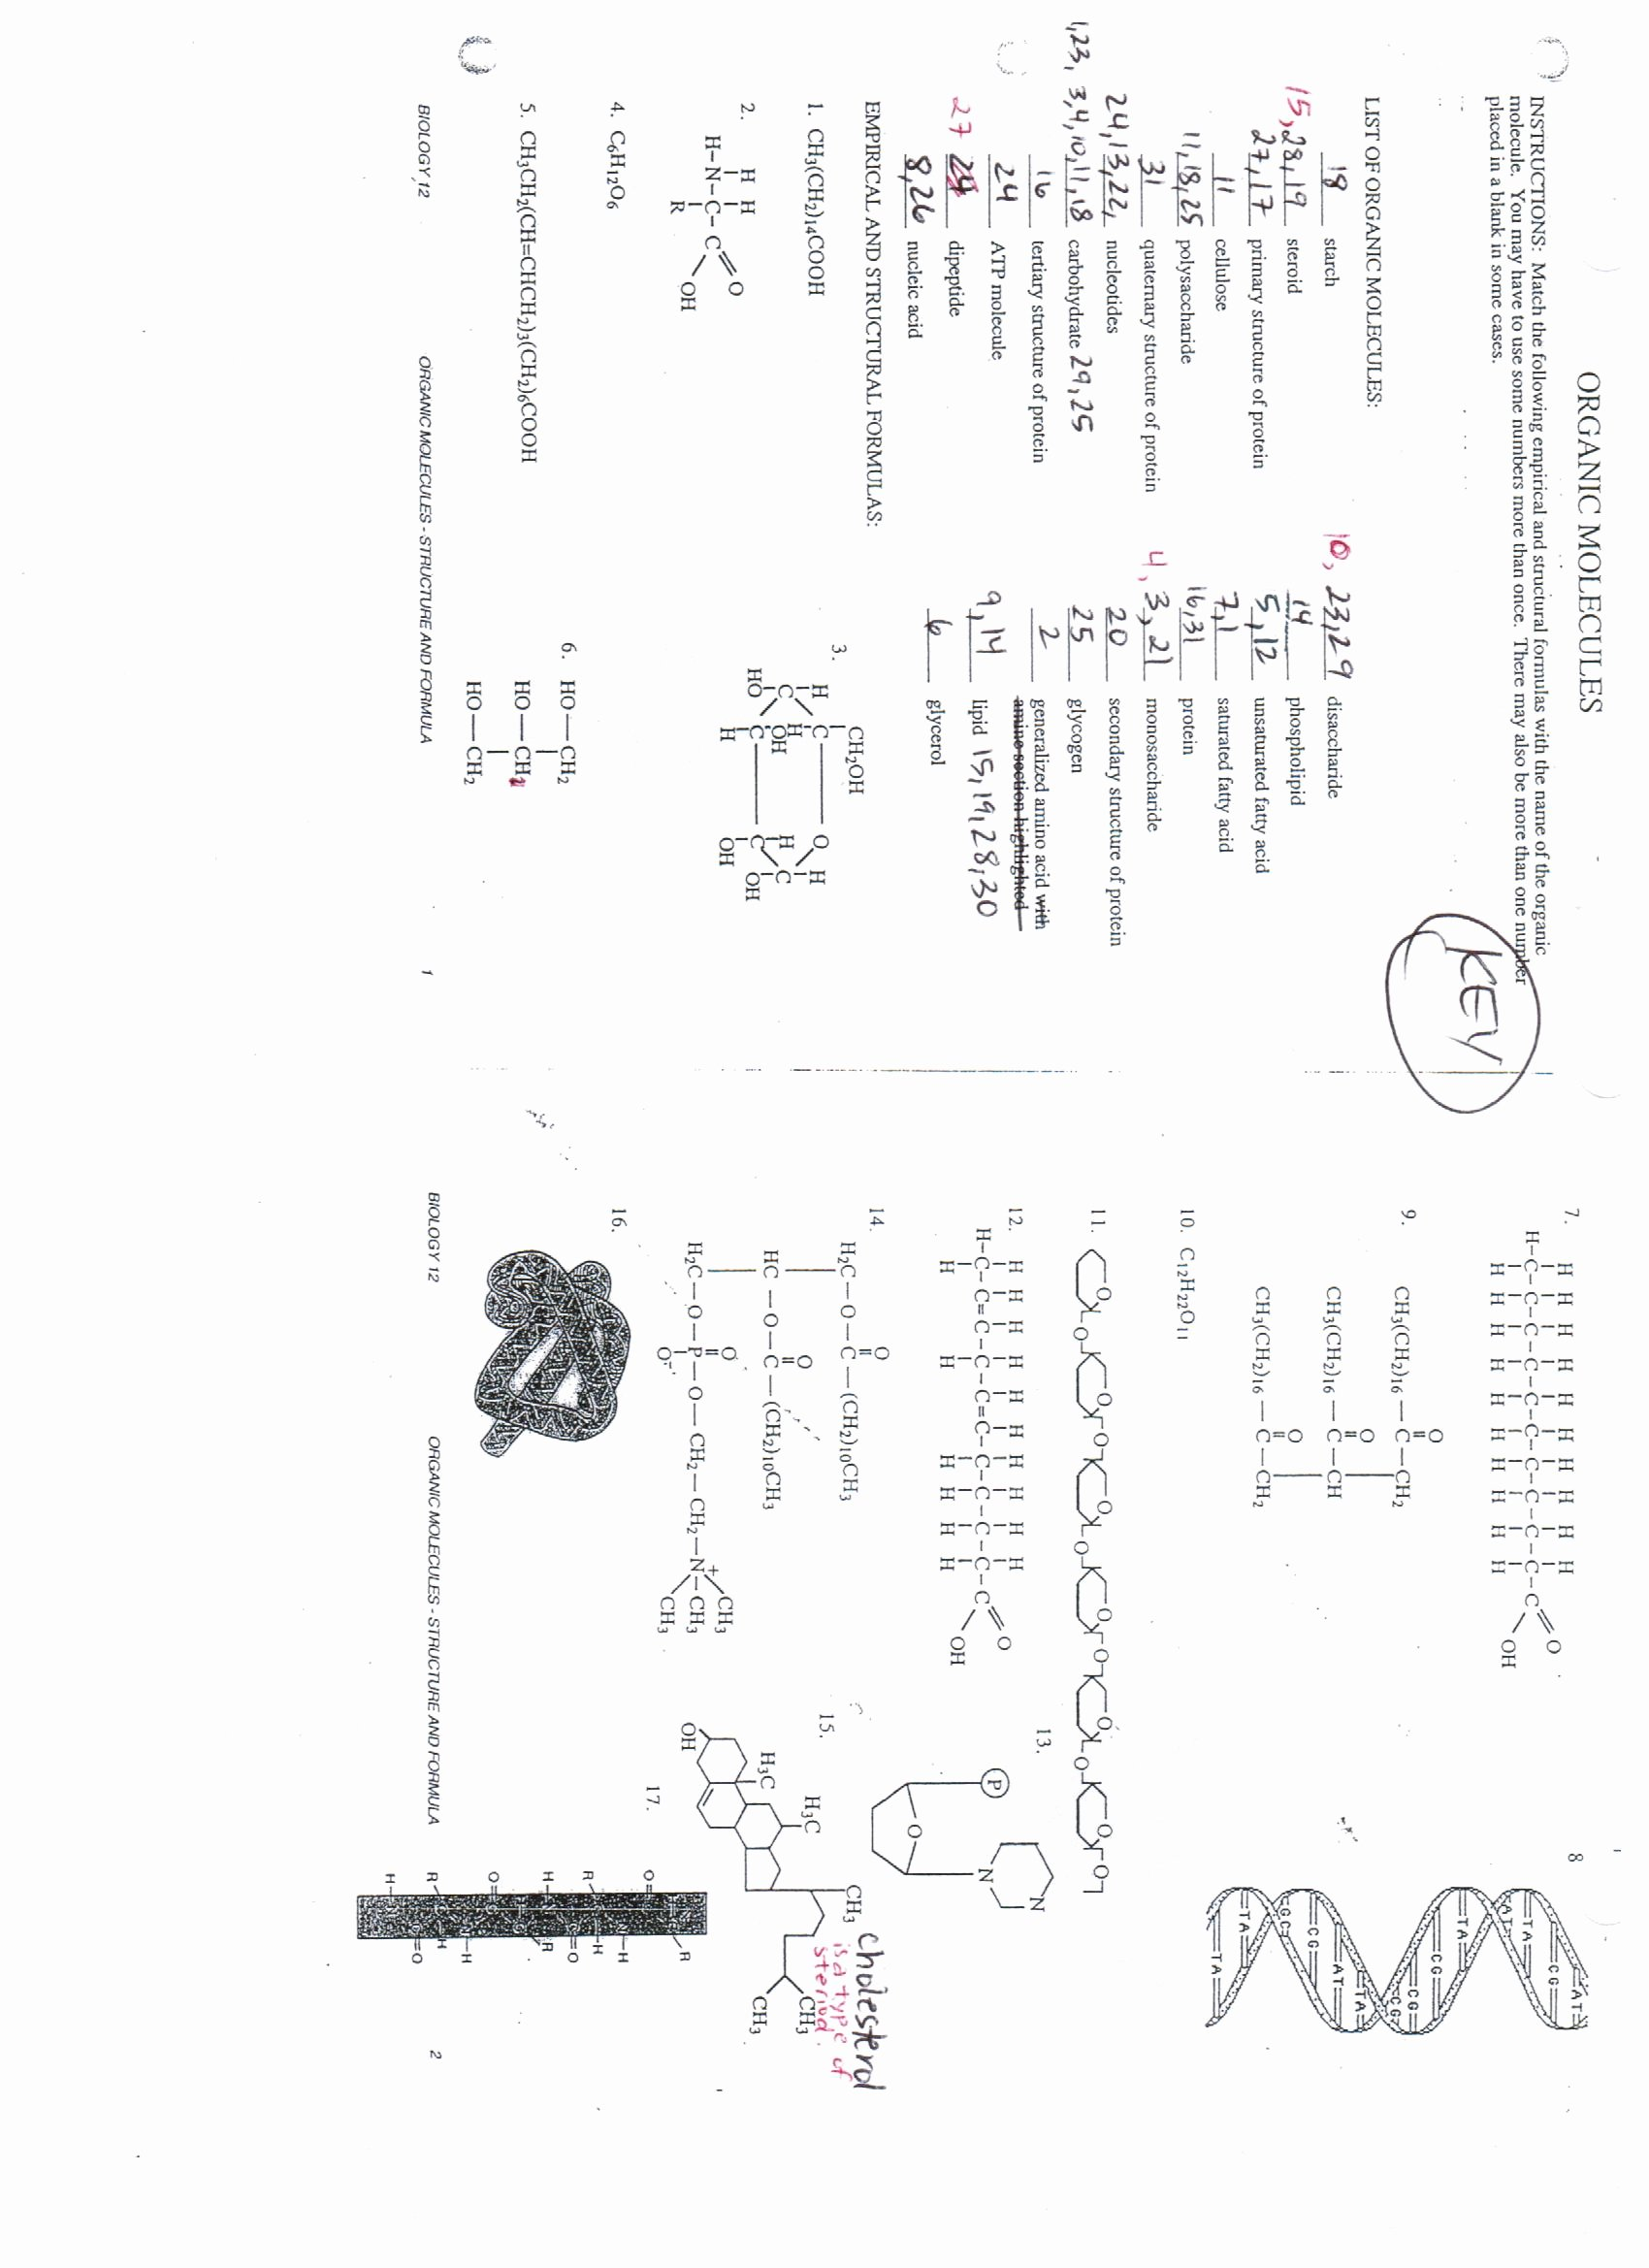 Biological Molecules Worksheet Answers Beautiful 301 Moved Permanently